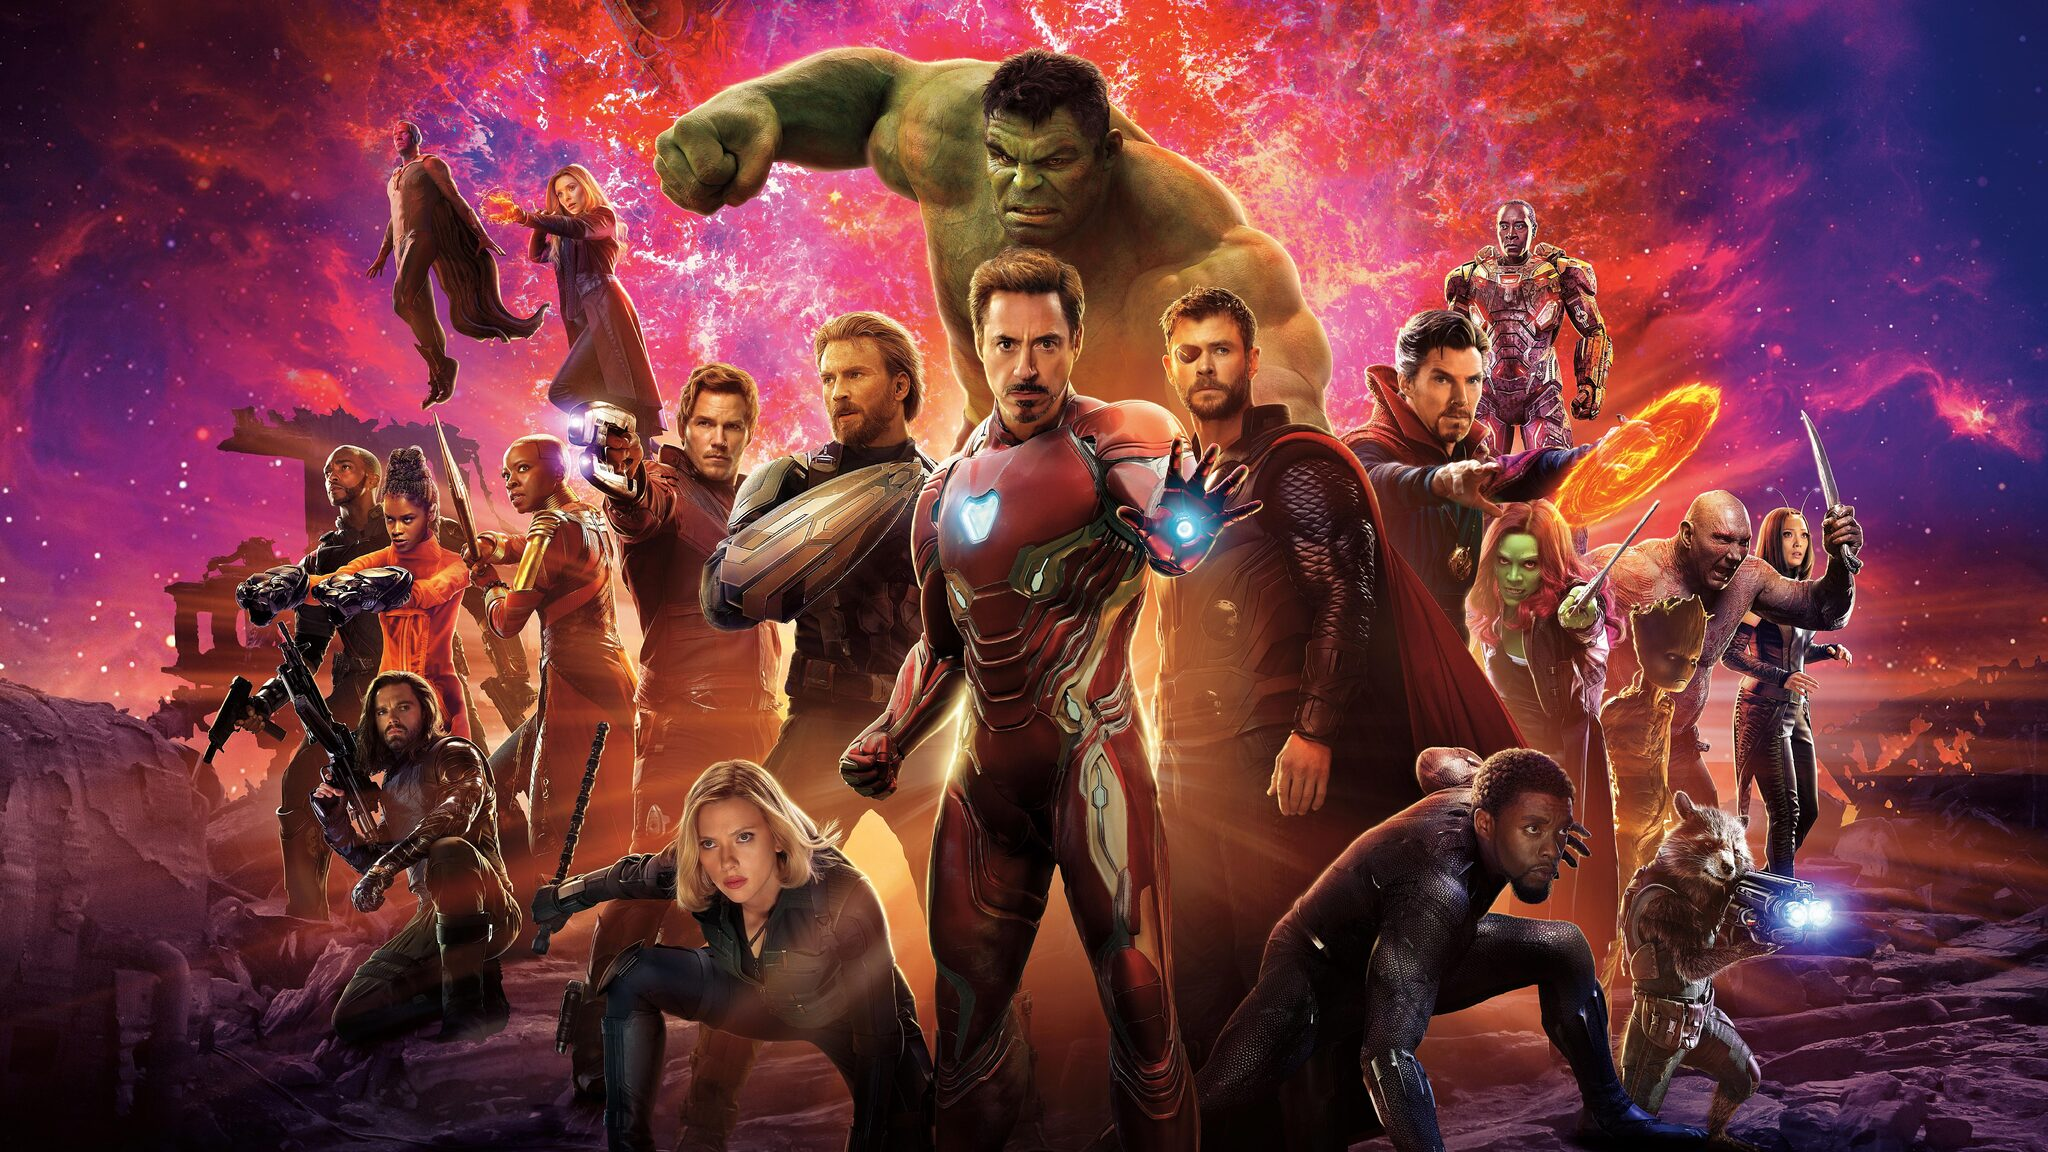 2048x1152 Avengers Infinity War International Poster 2048x1152